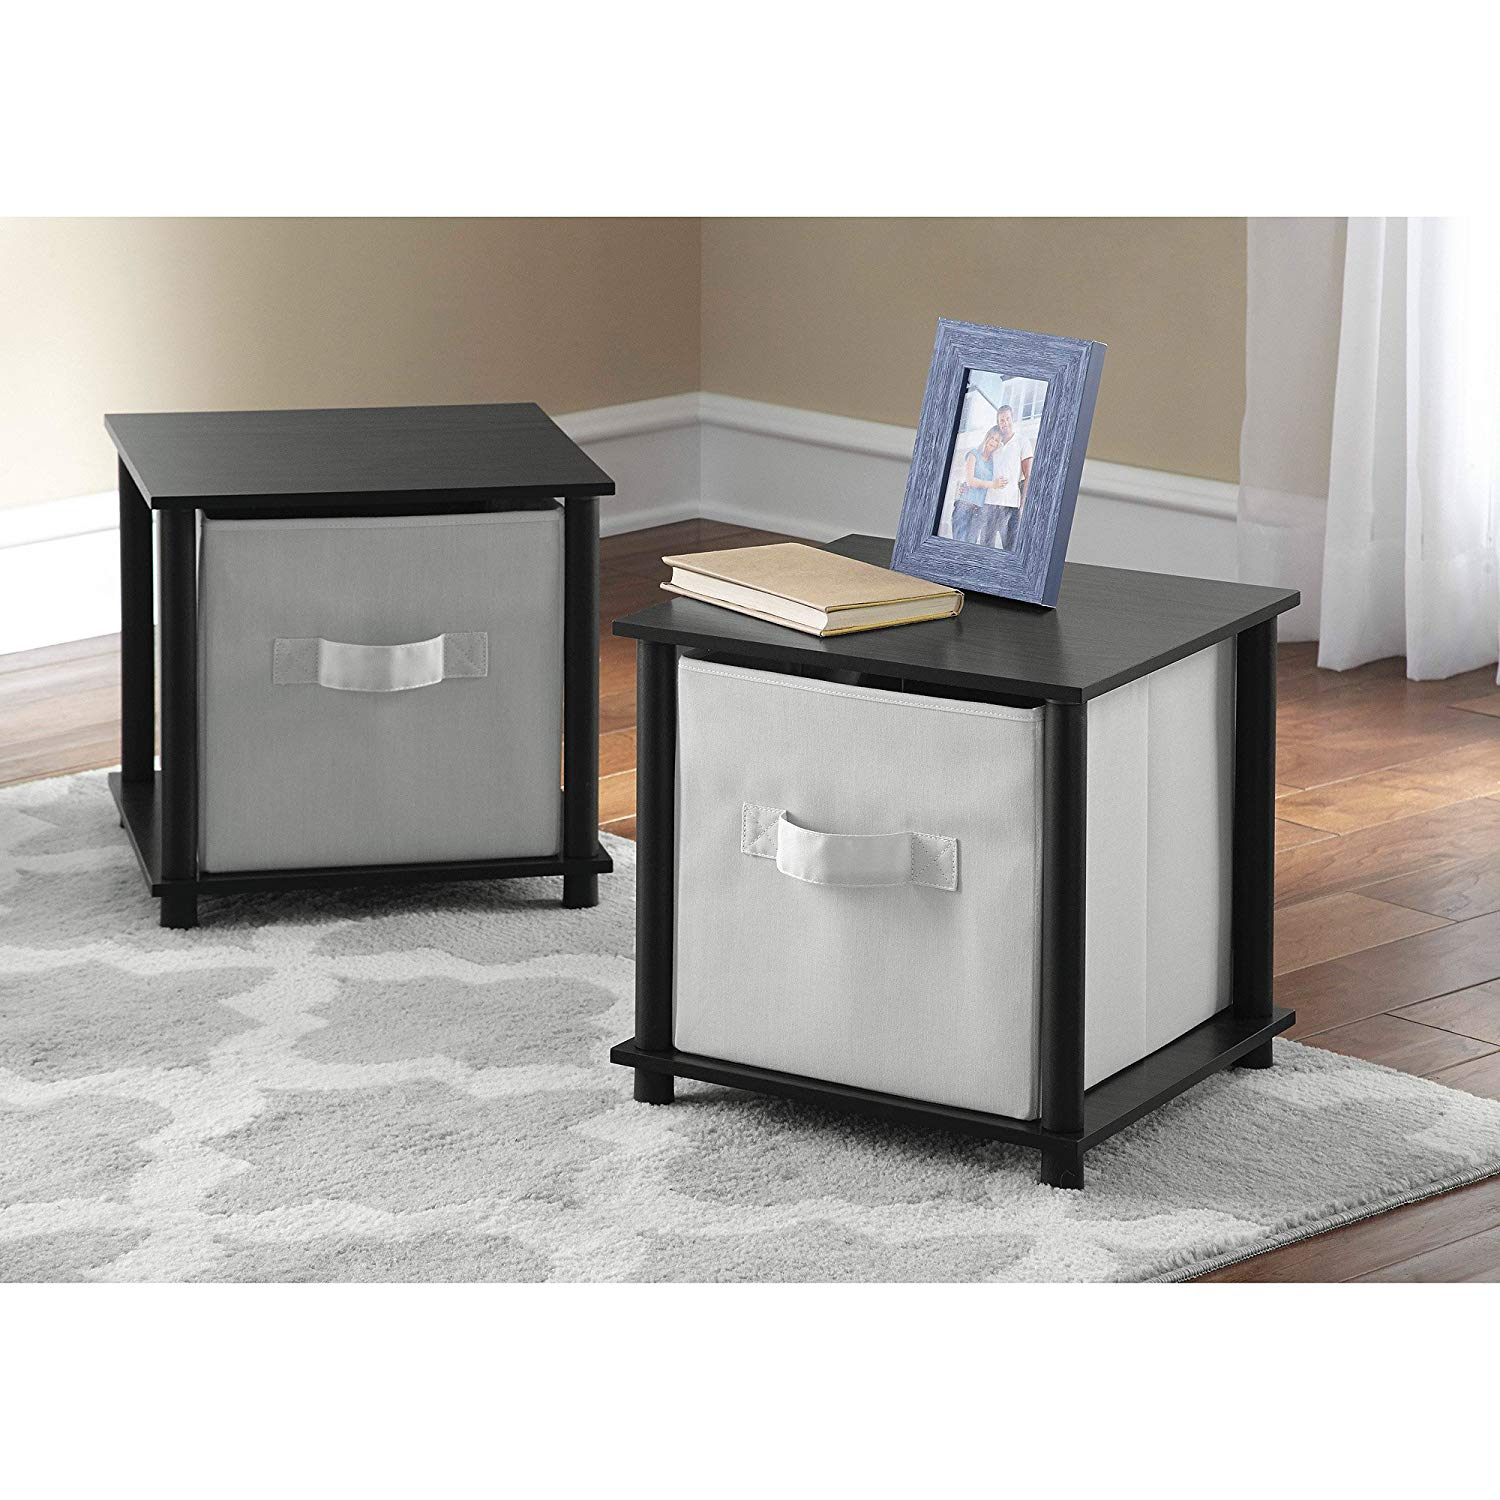 infrared heater the terrific awesome mainstays nightstand end black oak tools single cube storage shelf table dark gray side tables set kitchen dining mid century sofa footlocker